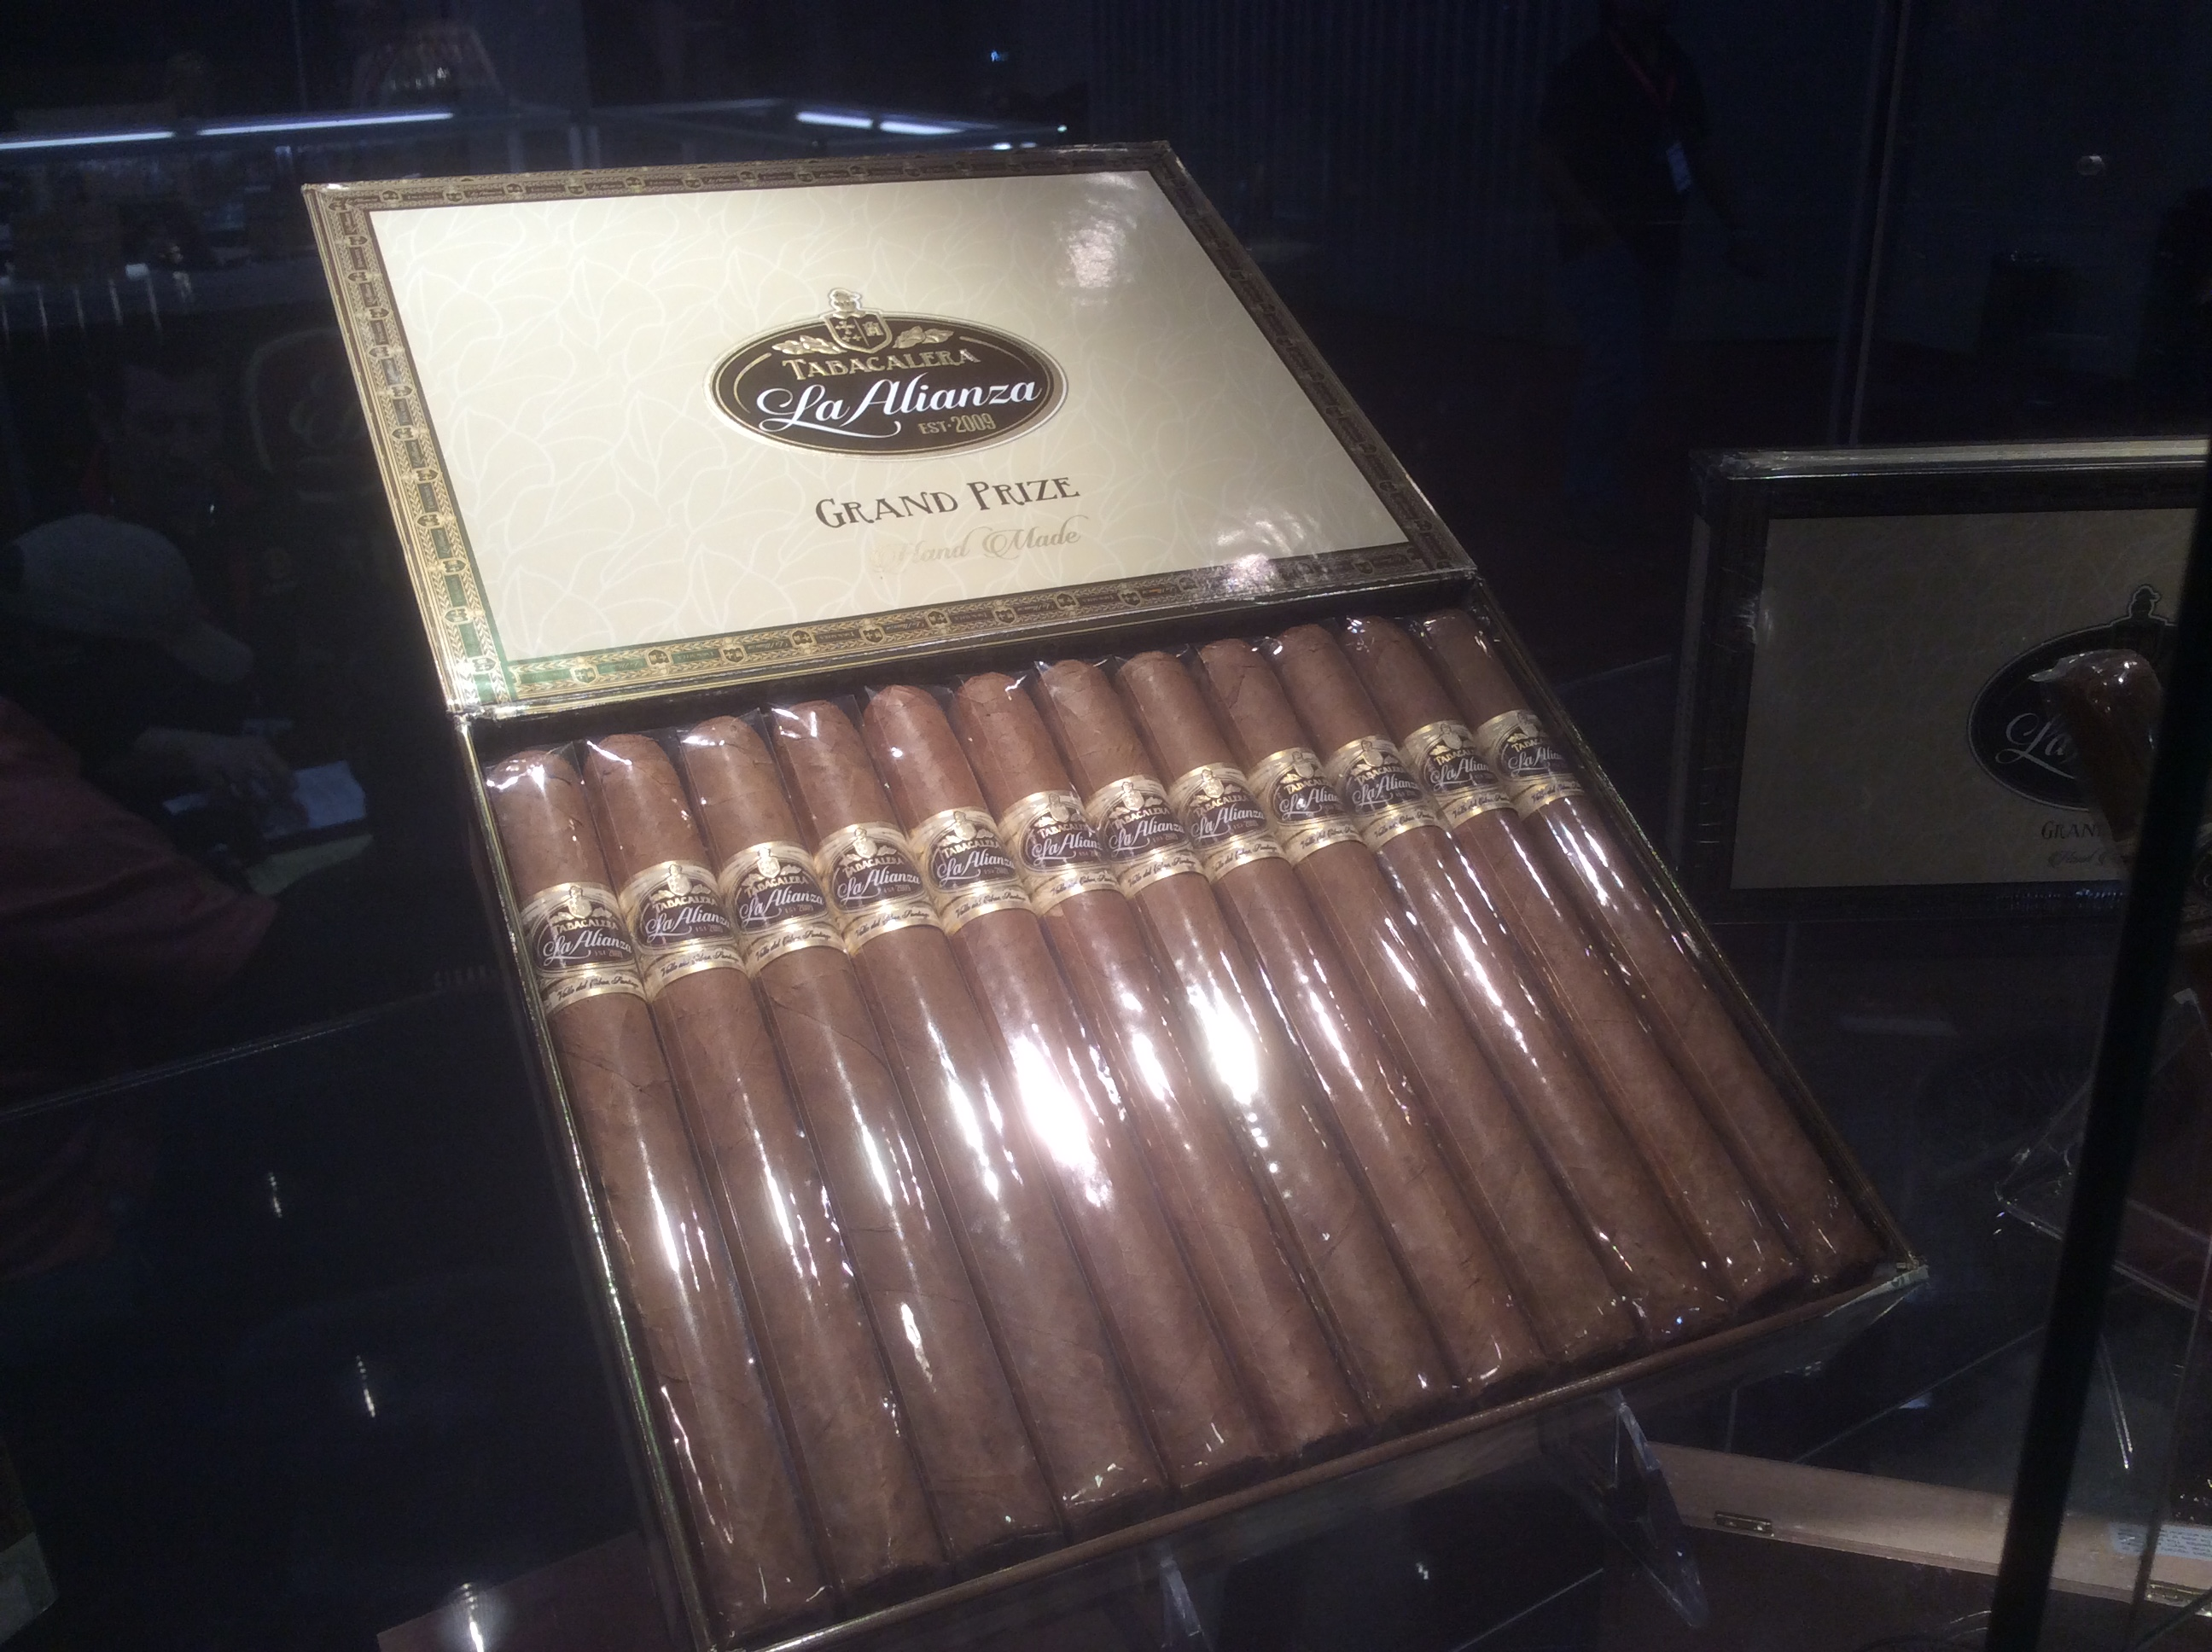 Cigar News: Grand Prize by E.P. Carrillo Makes Debut at 2016 IPCPR Trade Show